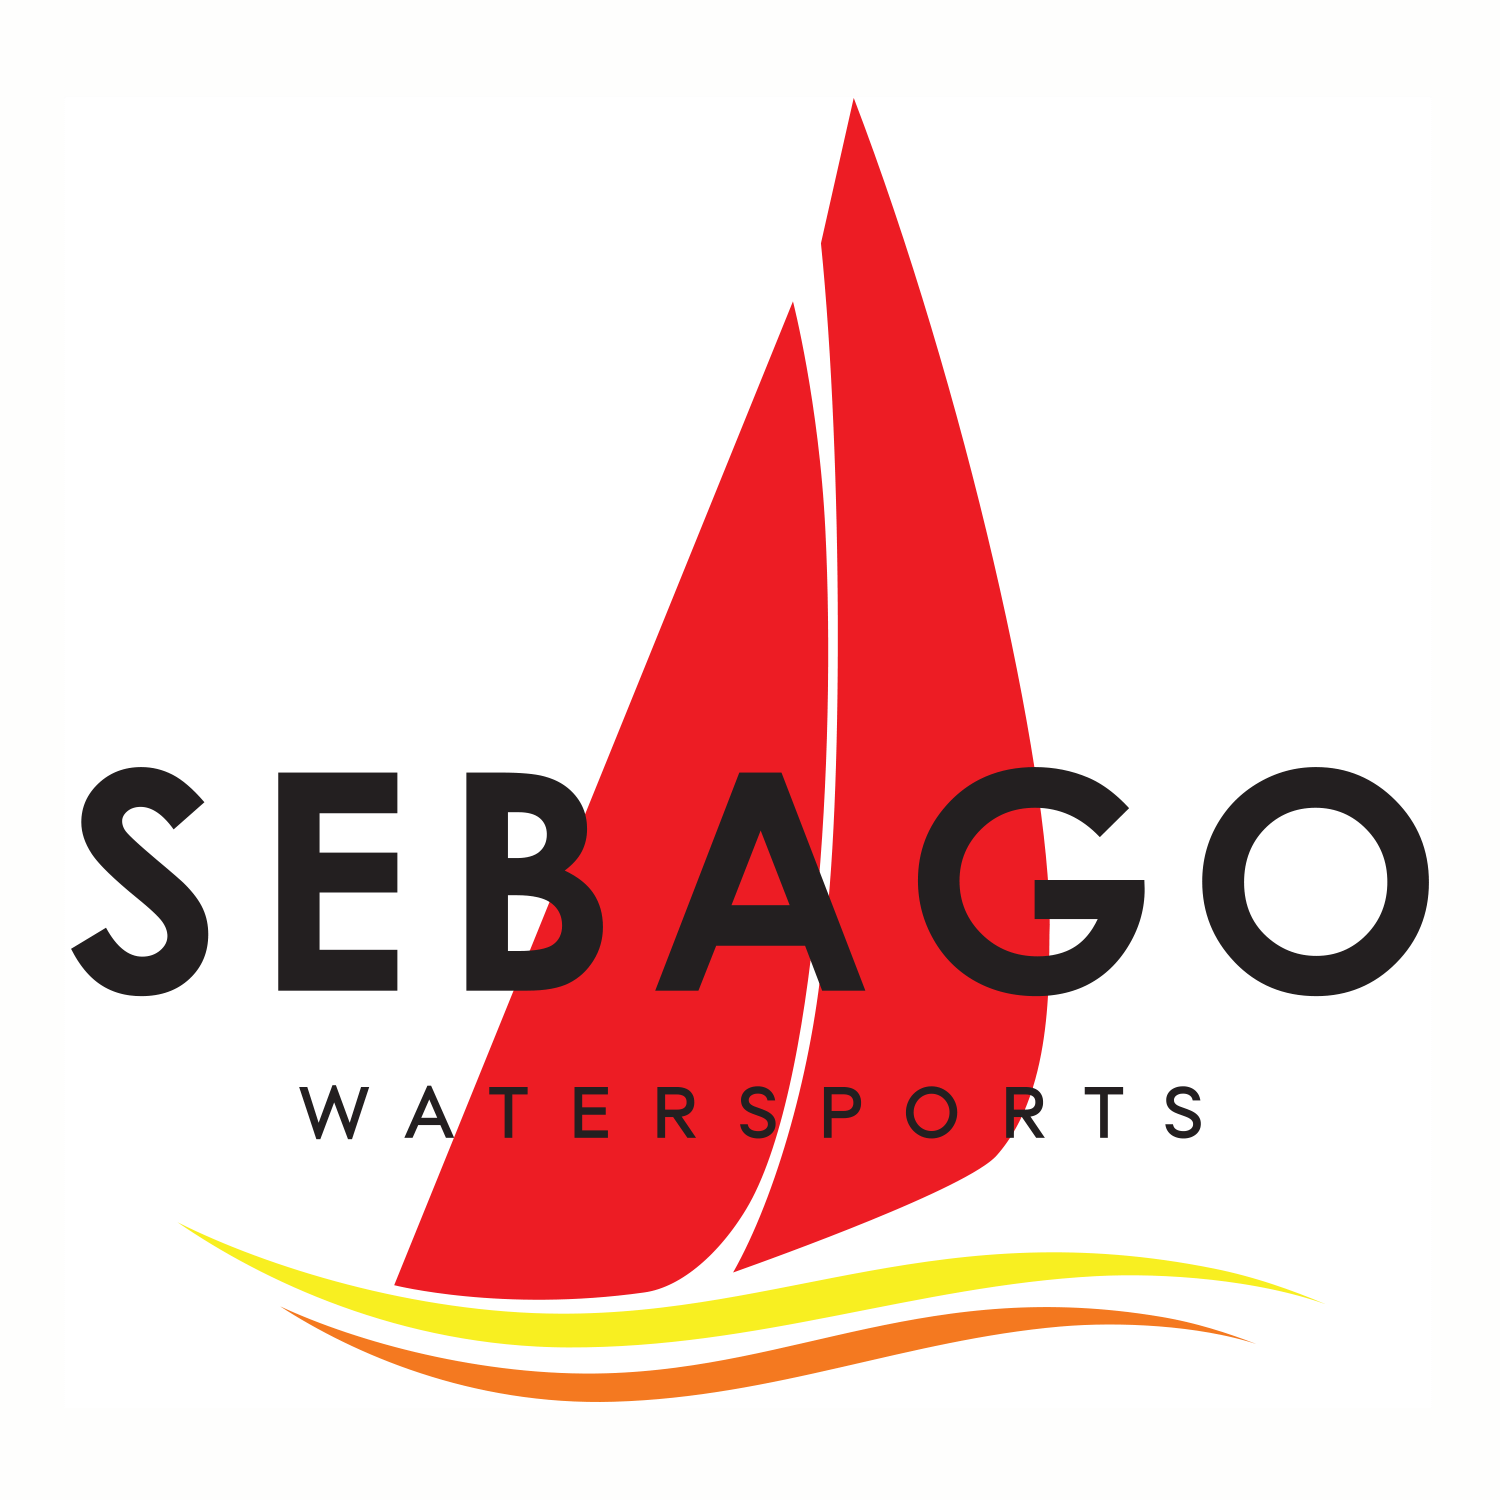 Sebago Watersports